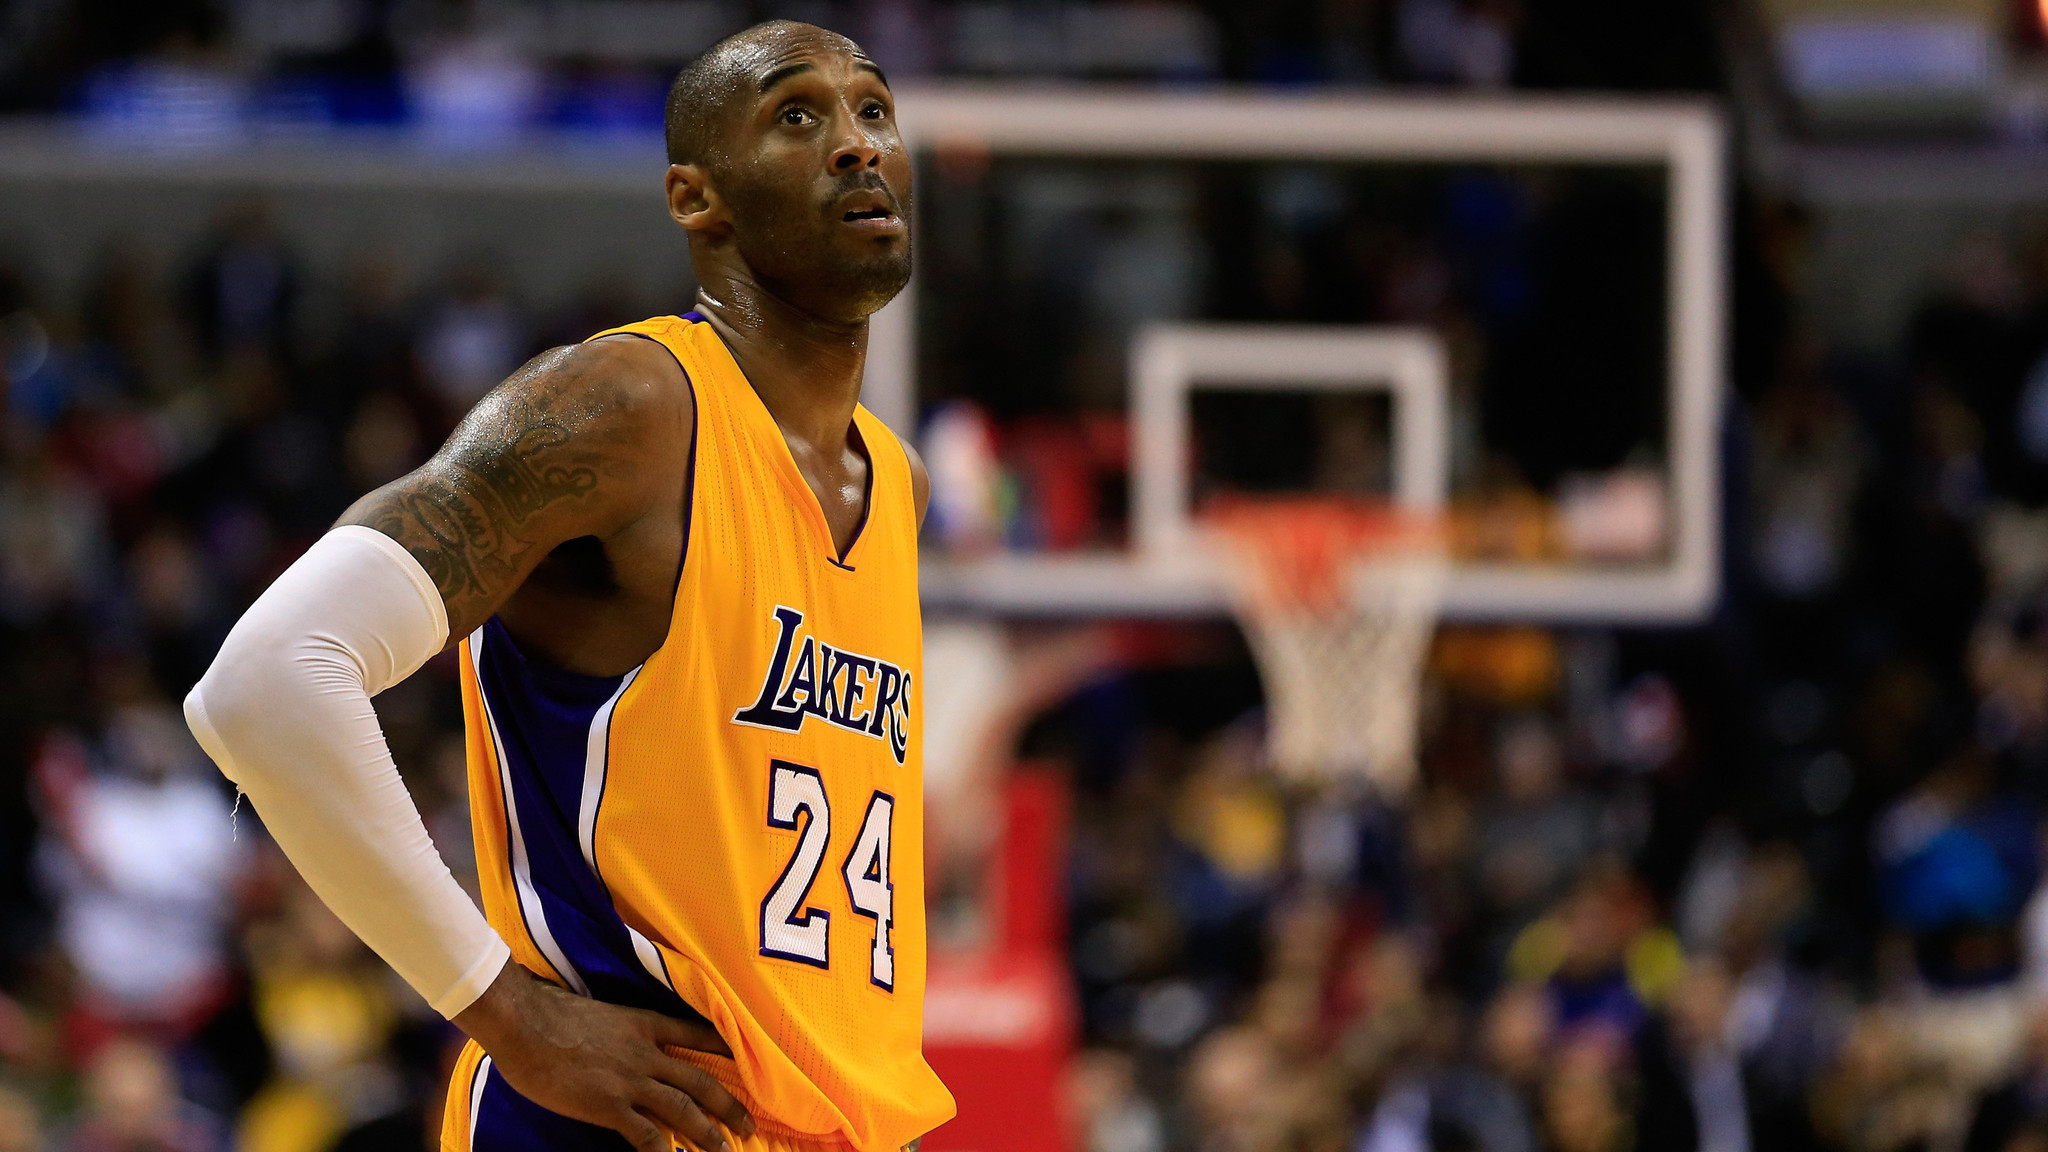 Lakers GM Mitch Kupchak Kobe Bryant still likely to retire in